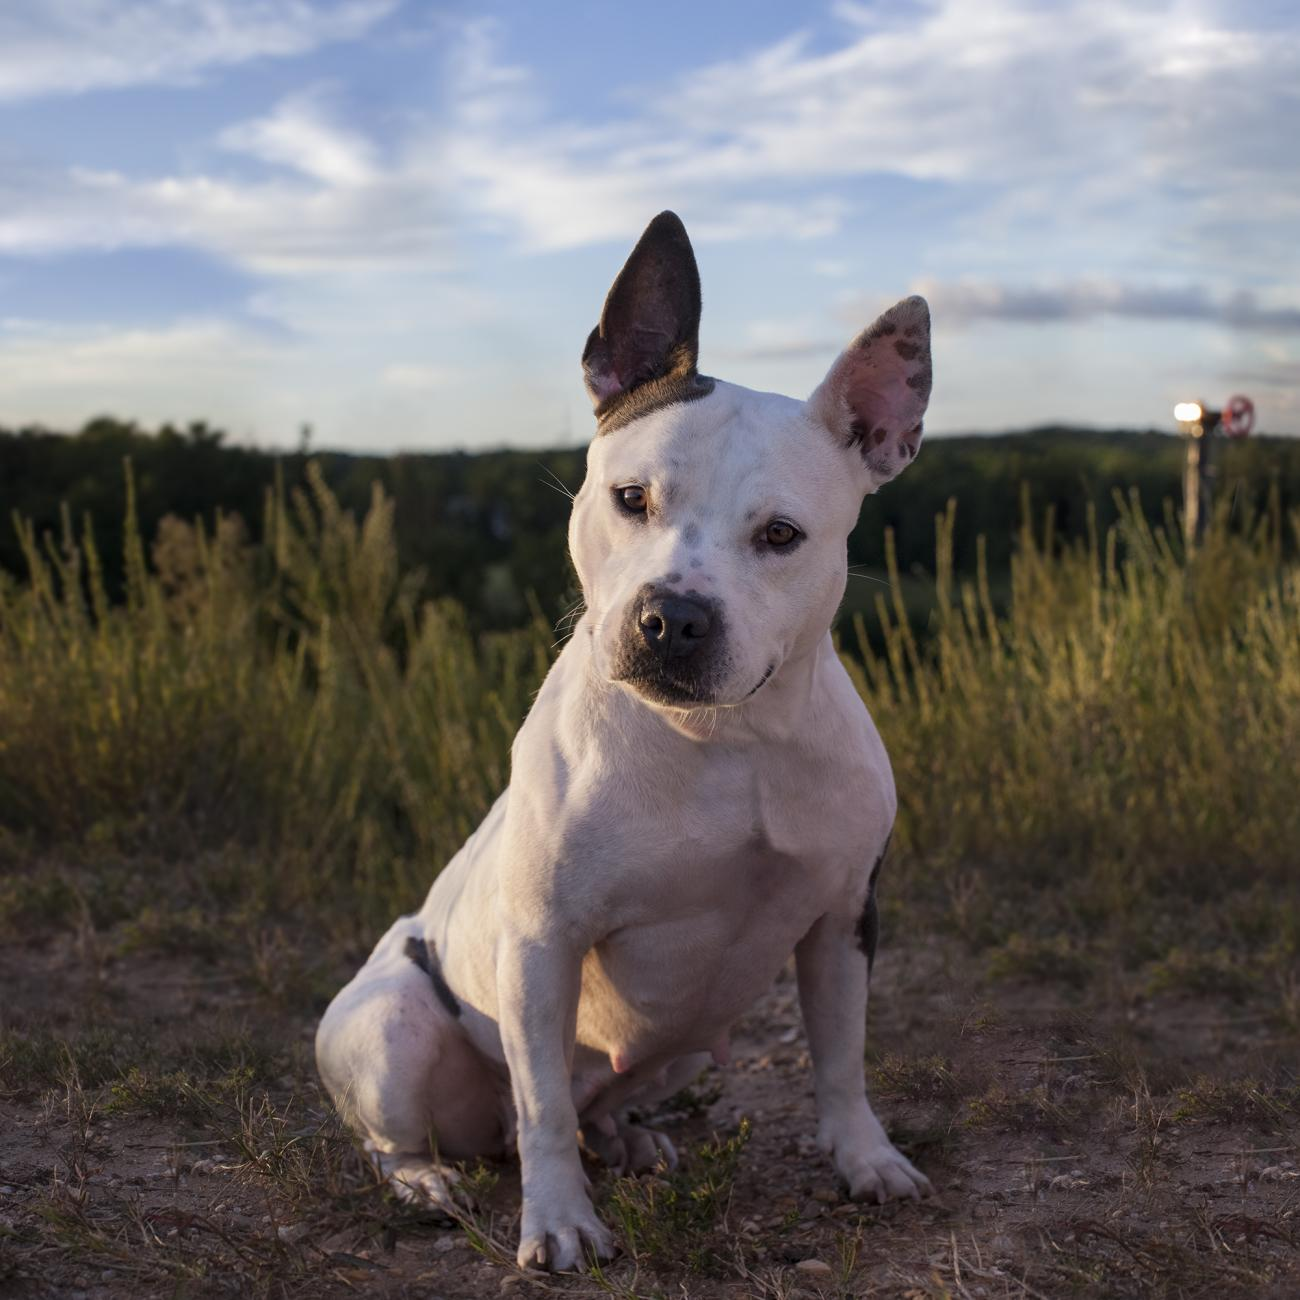 White dog in field with head tilted